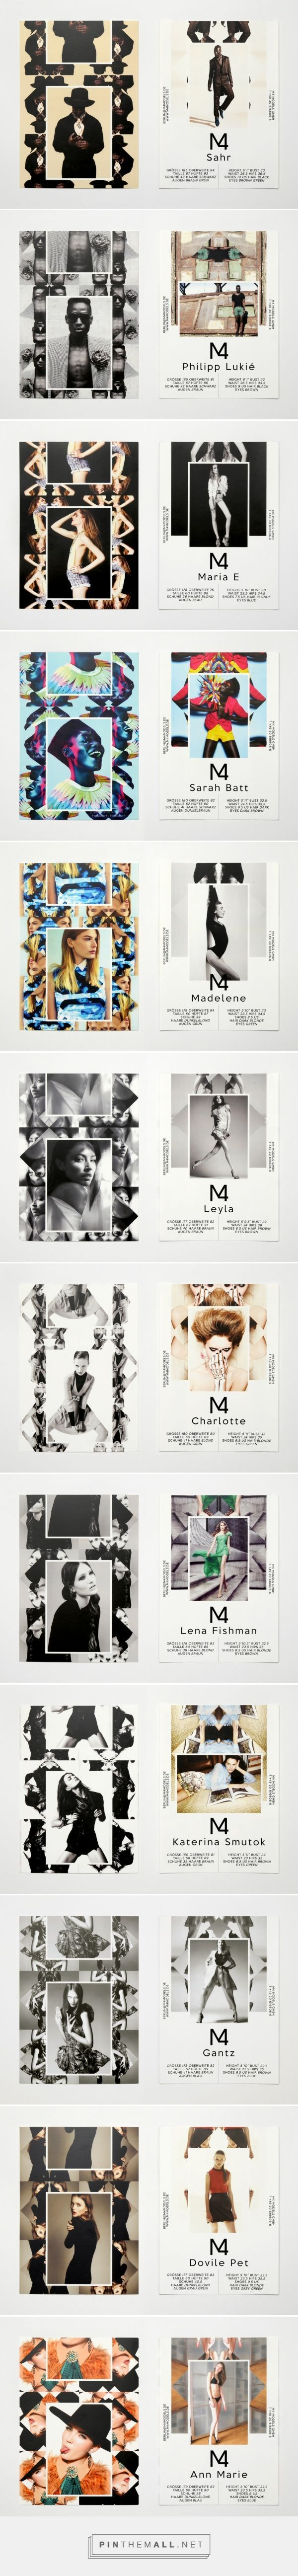 M4 Models SedCards Summer 2012 | Eps51 graphic design studio